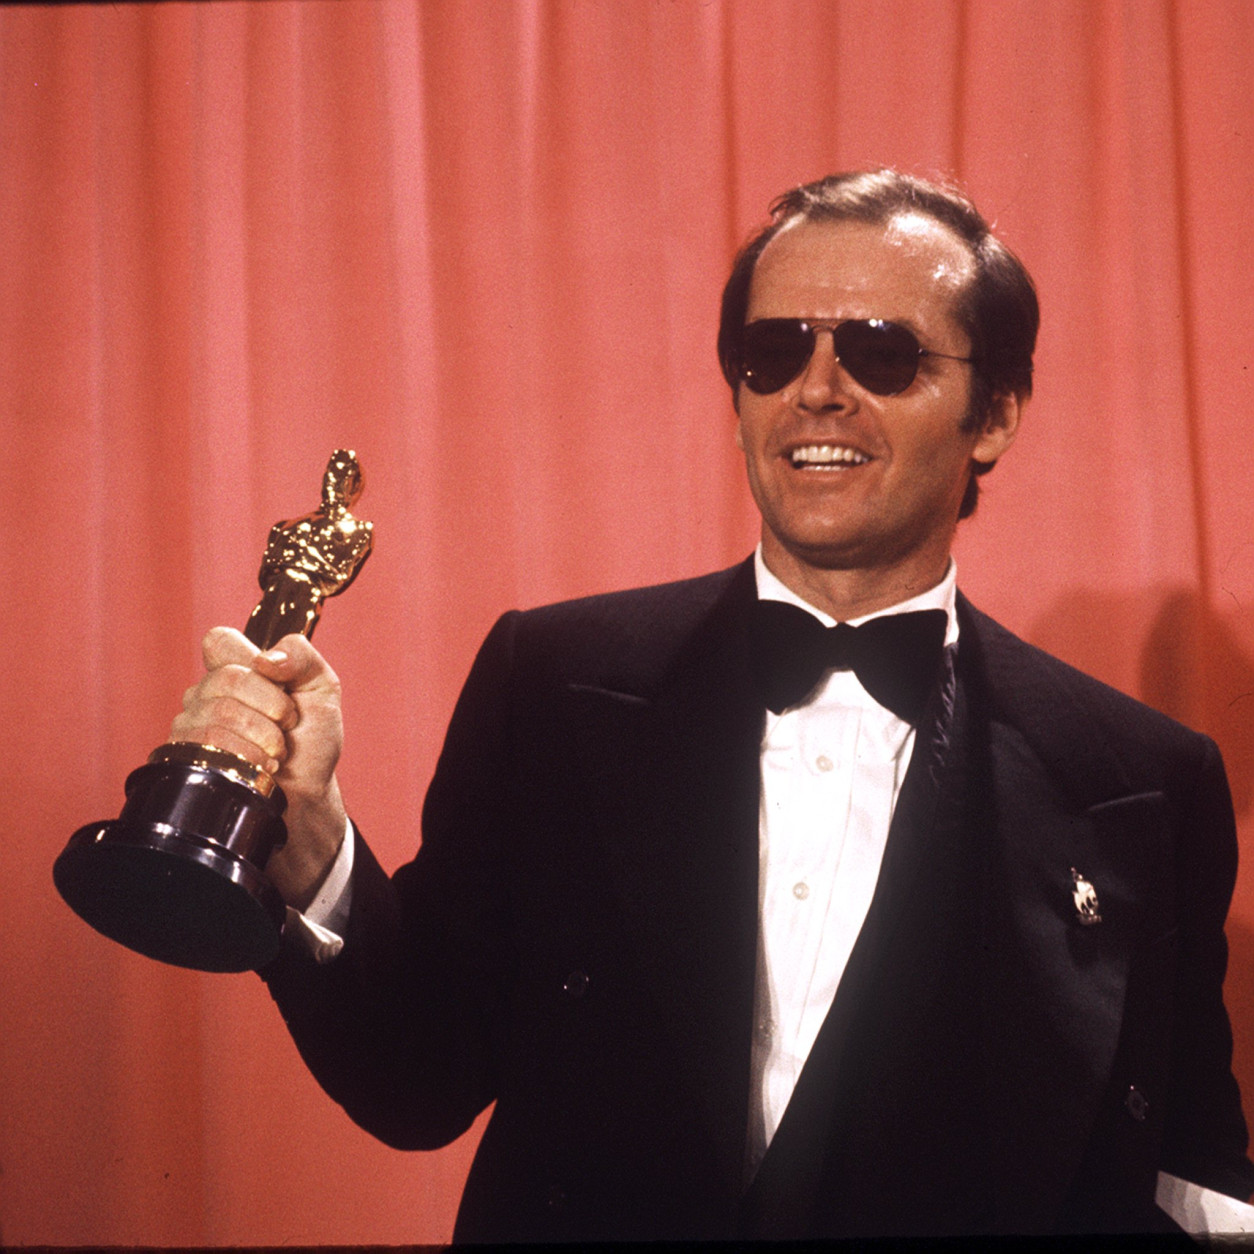 """Actor Jack Nicholson is 80 on April 22.  FILE - In this March 30, 1975 file photo, actor Jack Nicholson, named best actor of 1975 by the Motion Picture Academy, holds the Oscar he won for his role in """"One Flew over the Cuckoo's Nest"""" in Los Angeles.  Hundreds of artists, actors and musicians spent hours talking to Elliot Mintz, a radio and TV broadcaster in the 1960s and '70s, who is launching ElliotMintz.com on May 18, 2014.  Nicholson talked about the challenge of his """"One Flew Over the Cuckoo's Nest"""" role before he won the Oscar for it. (AP Photo, file)"""